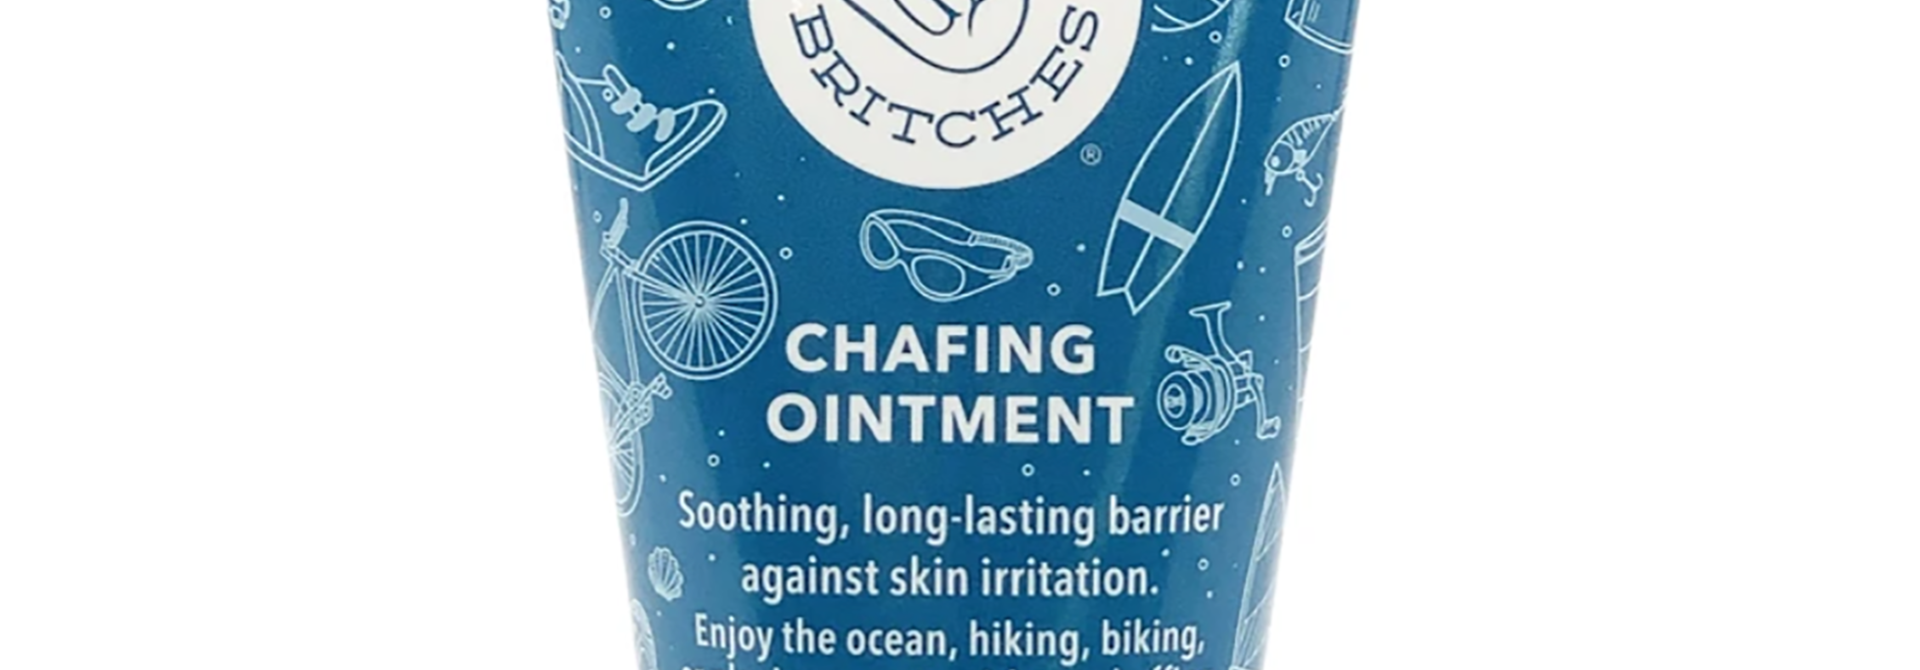 Chafing Ointment